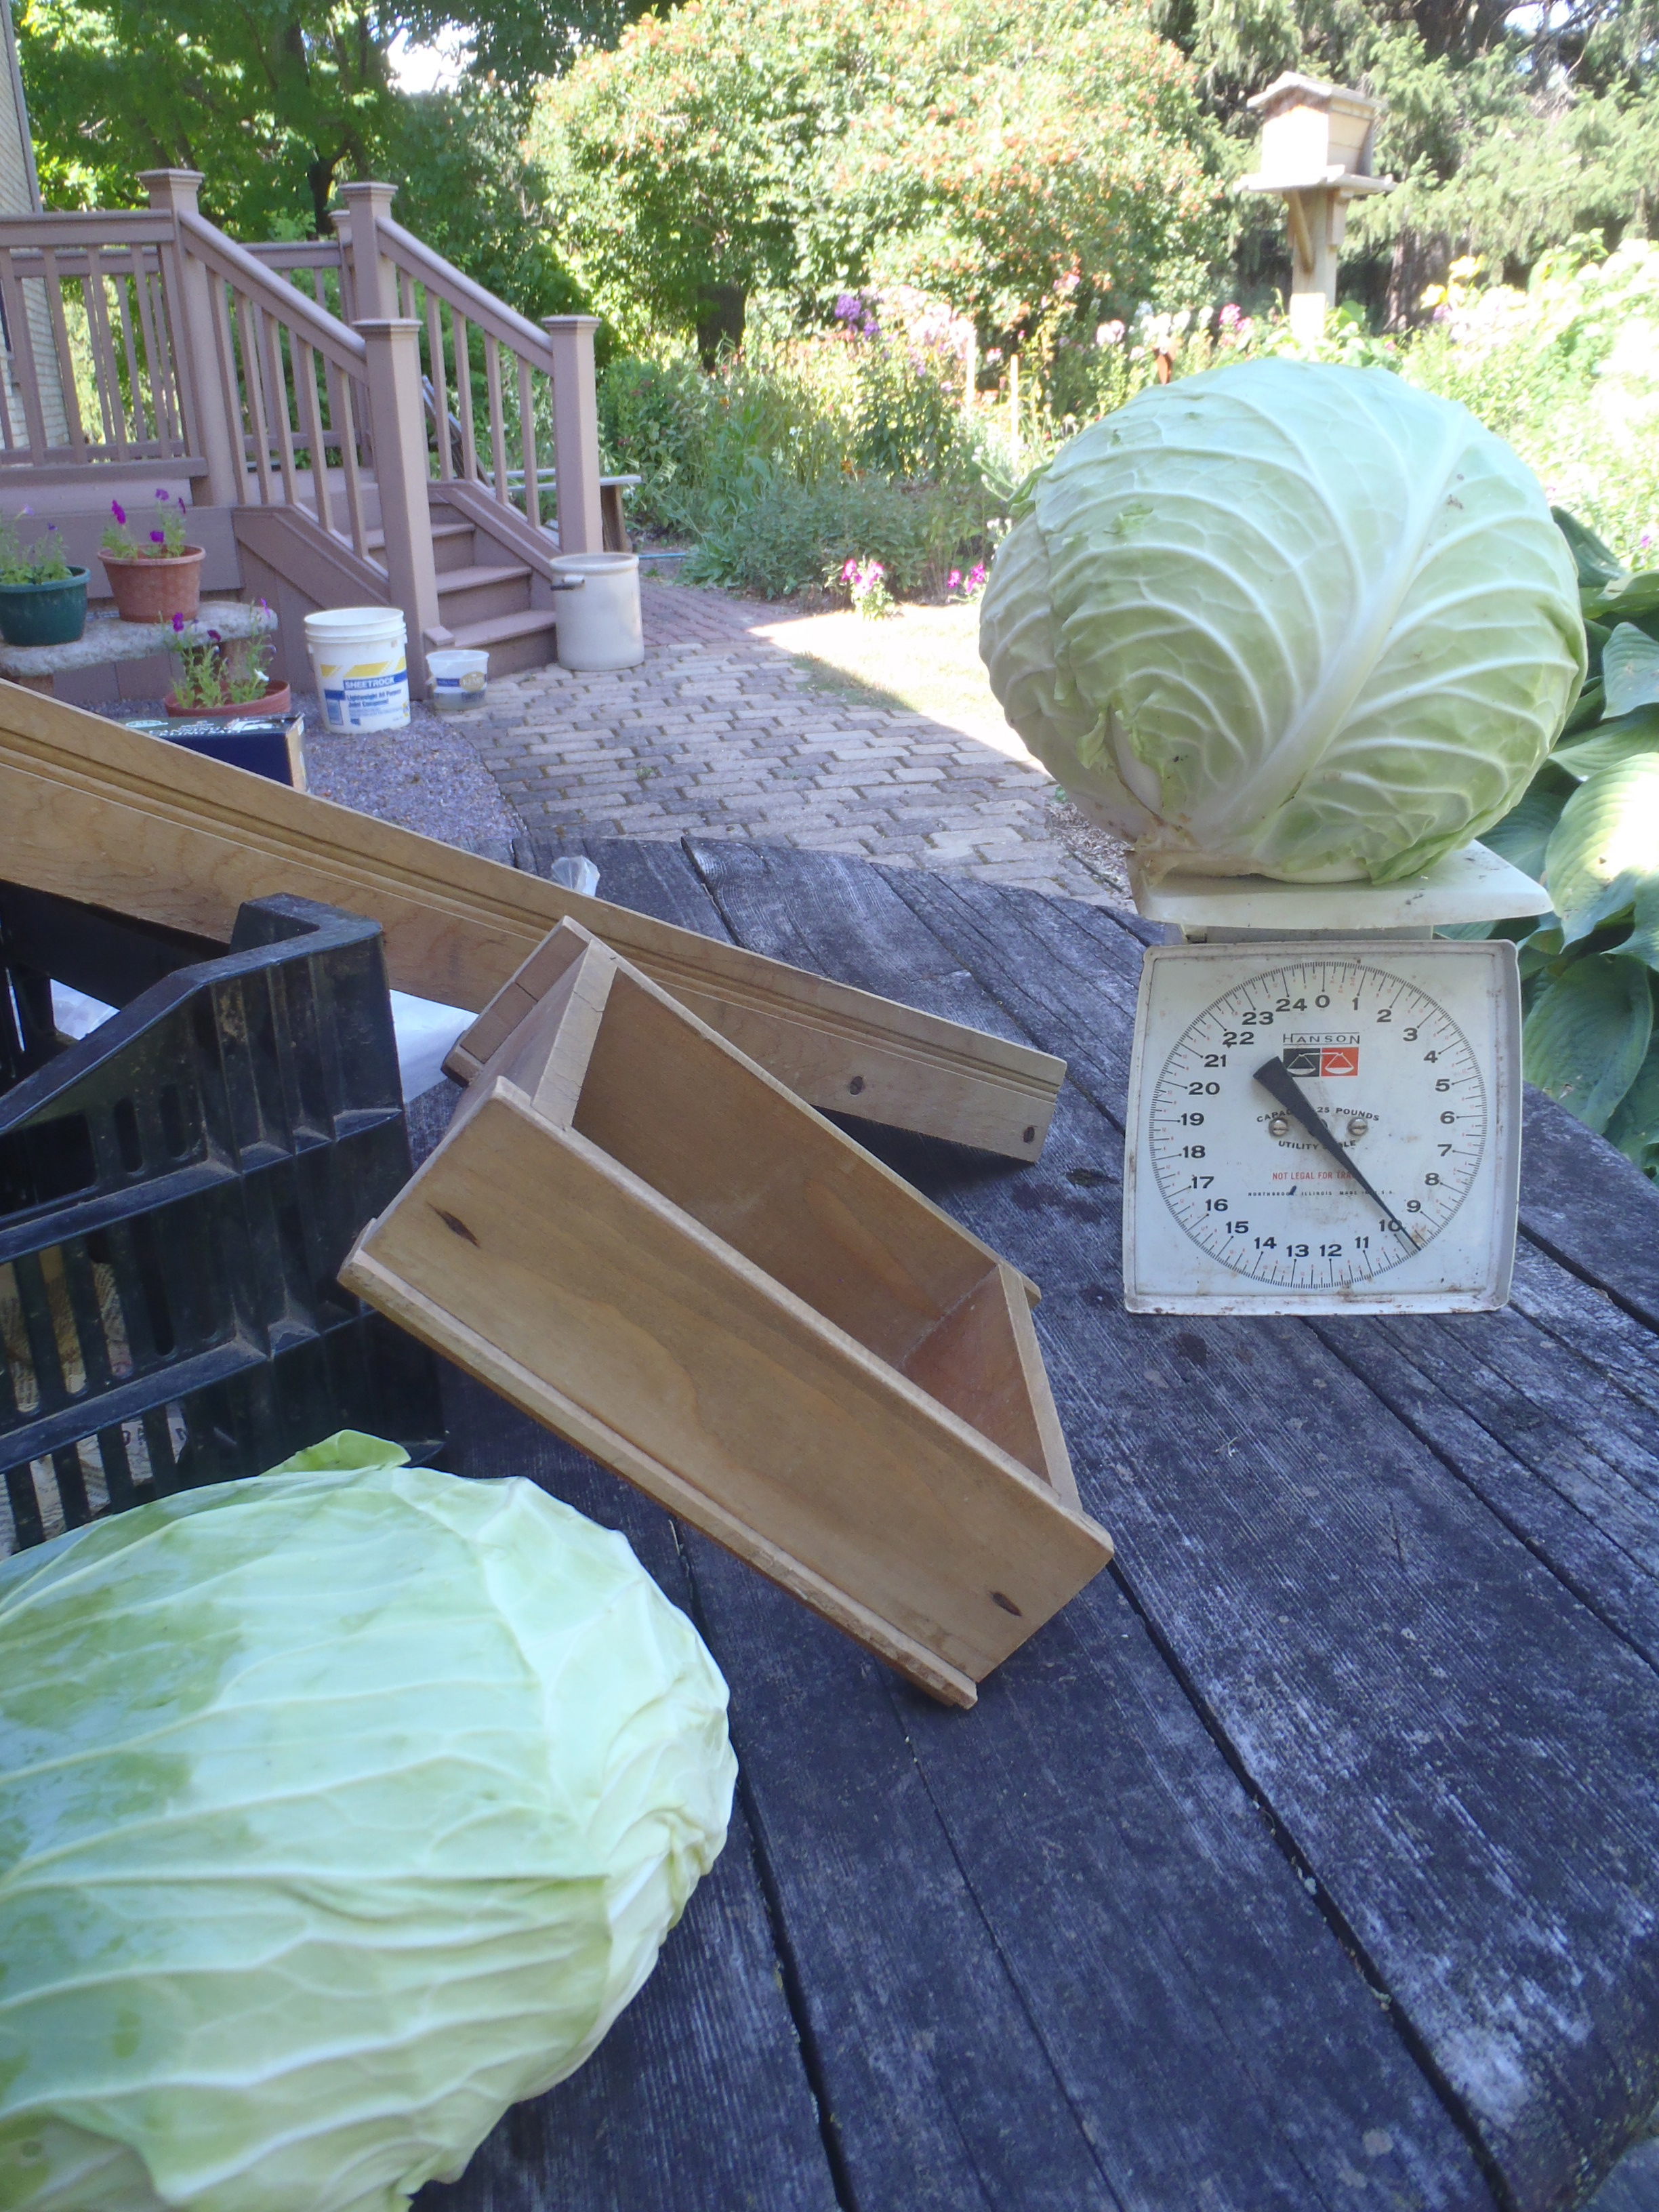 Cabbage ready for krautmaking. Cabbage was one of many  vegetables that did well this year on the farm